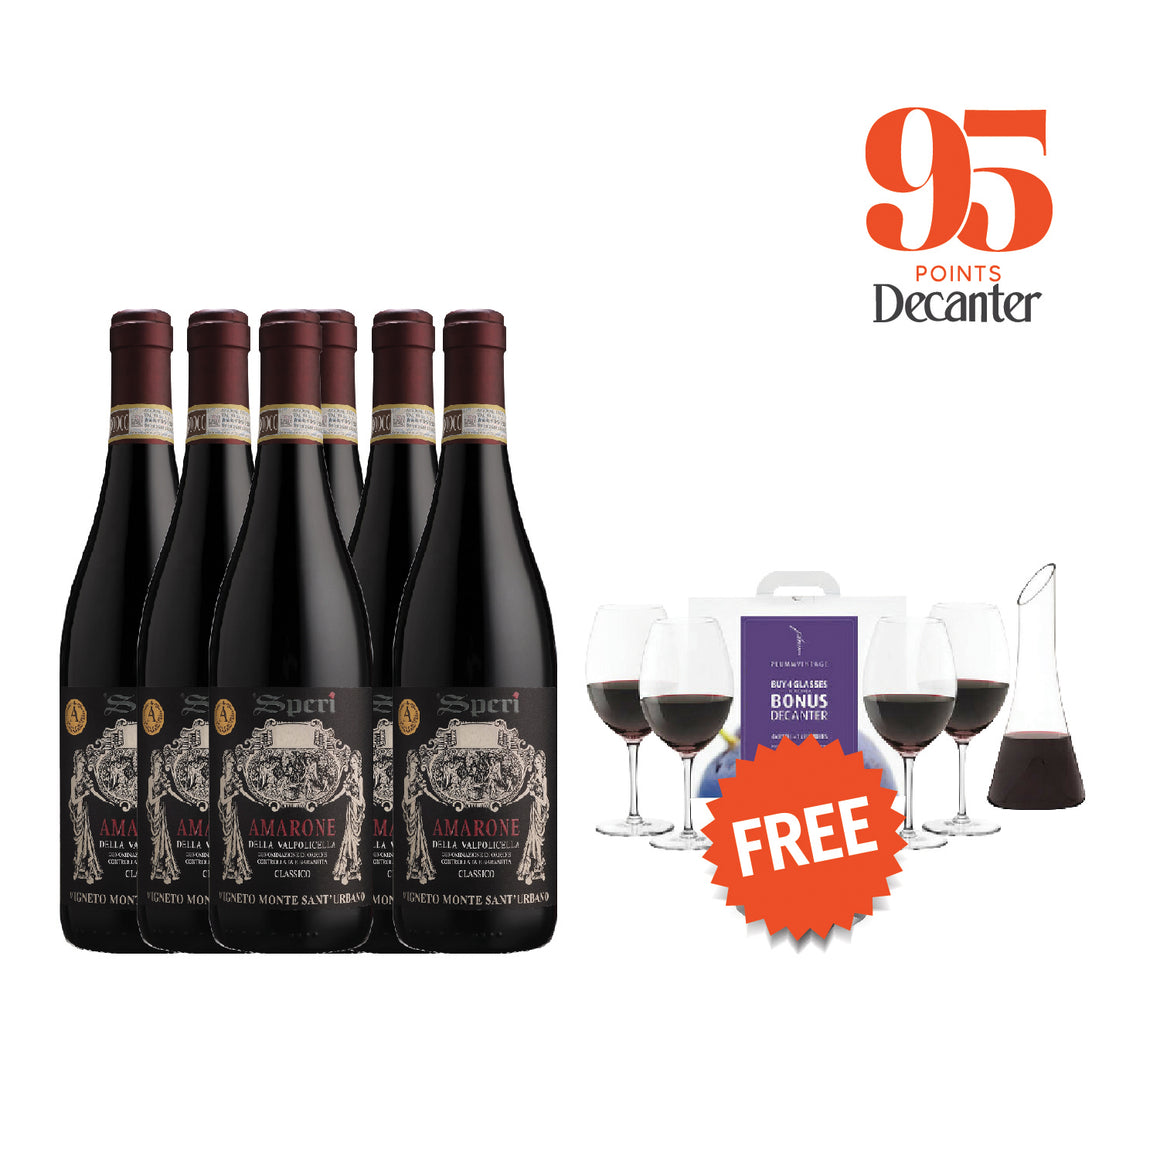 SPERI AMARONE DELLA VALPOLICELLA CLASSICO 2015 (6 BOTTLES WITH FREE PLUMM RED GLASSES & FLINDERS DECANTER PACK WORTH $198